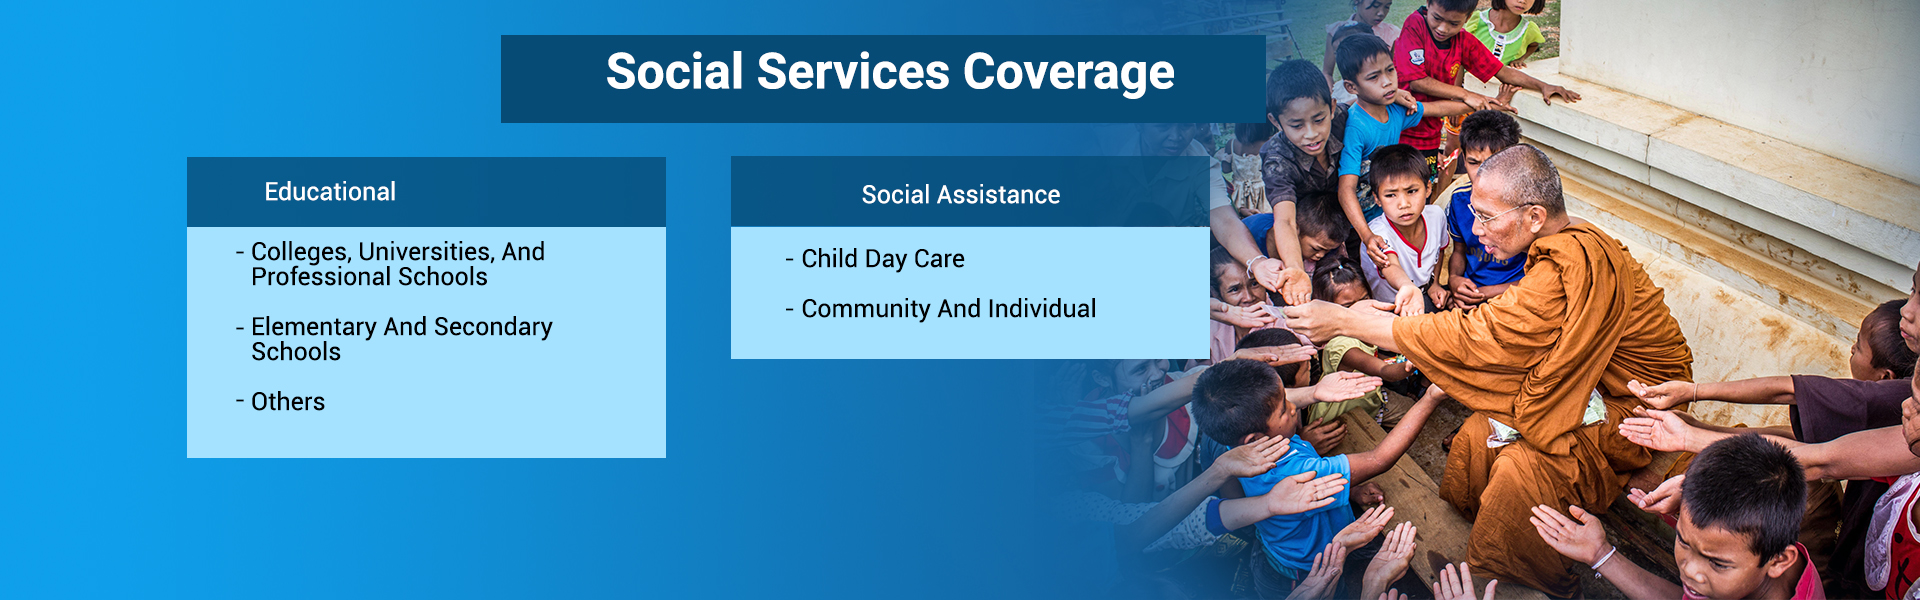 Social Services Coverage